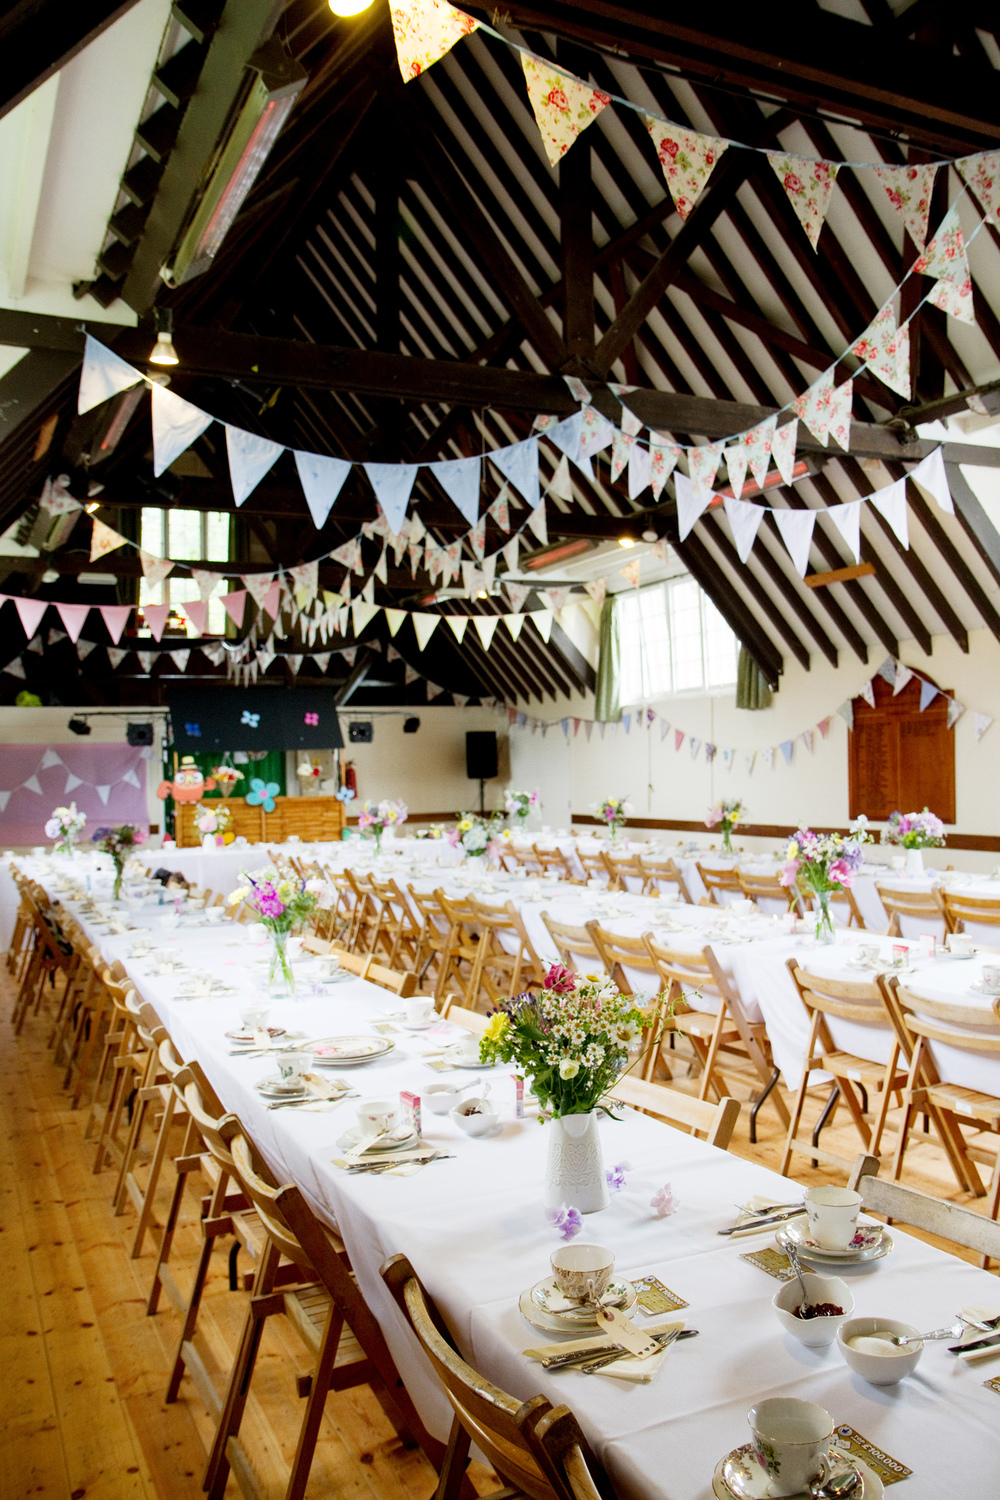 Village Hall Wedding, Helen England Photography, Kent, U.K